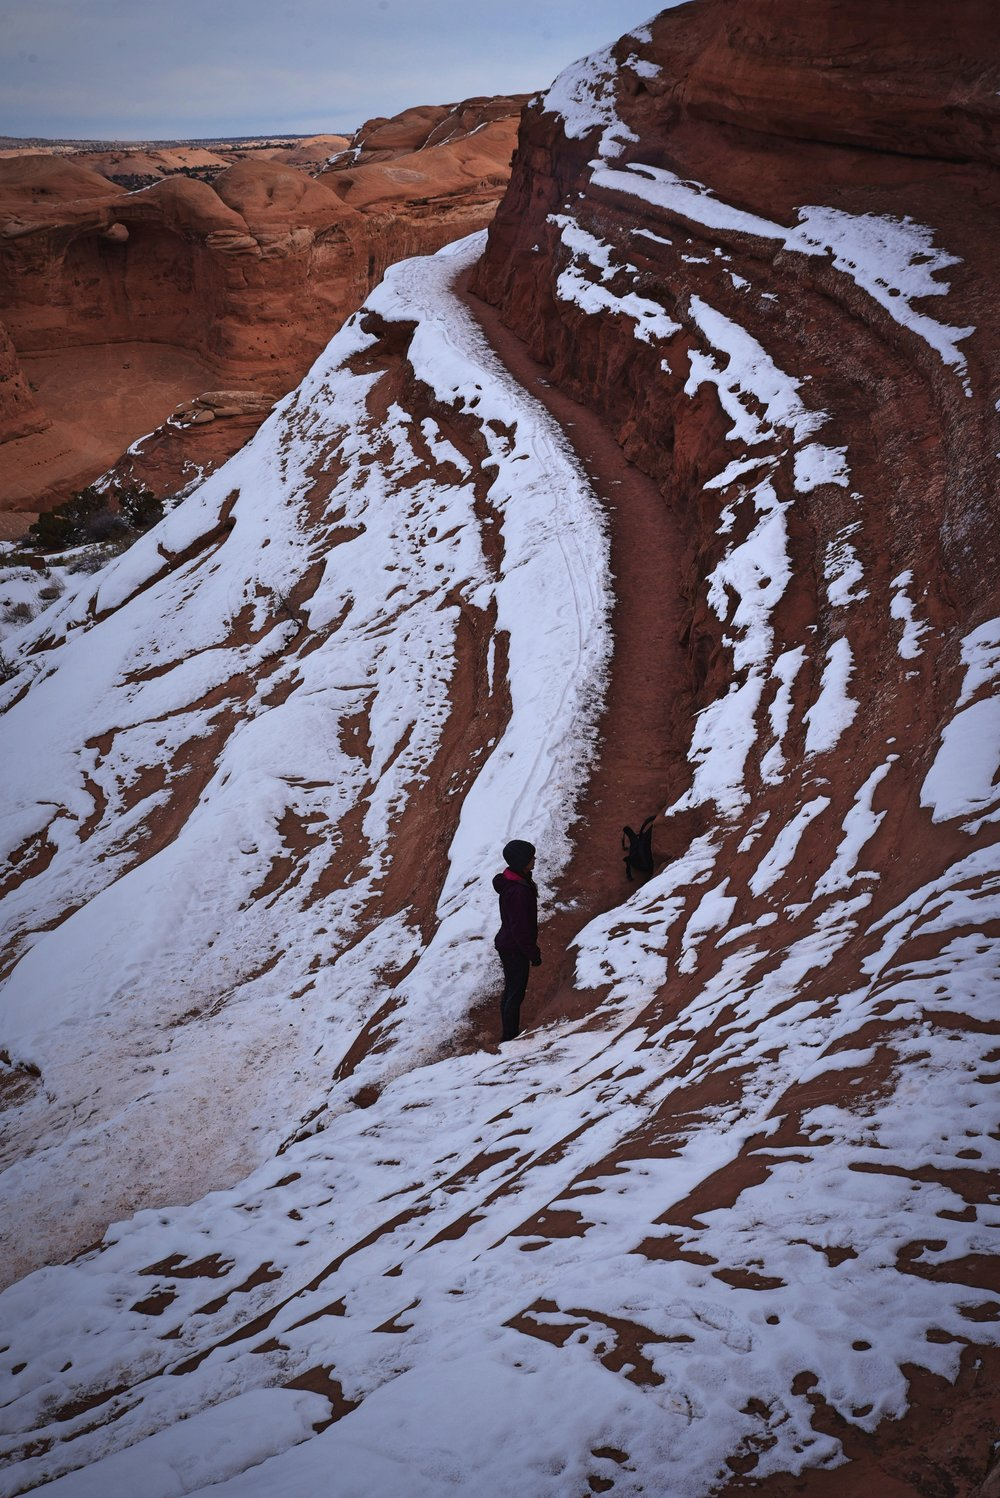 The final portion of the Delicate Arch Trail is on a ledge along a rock wall.